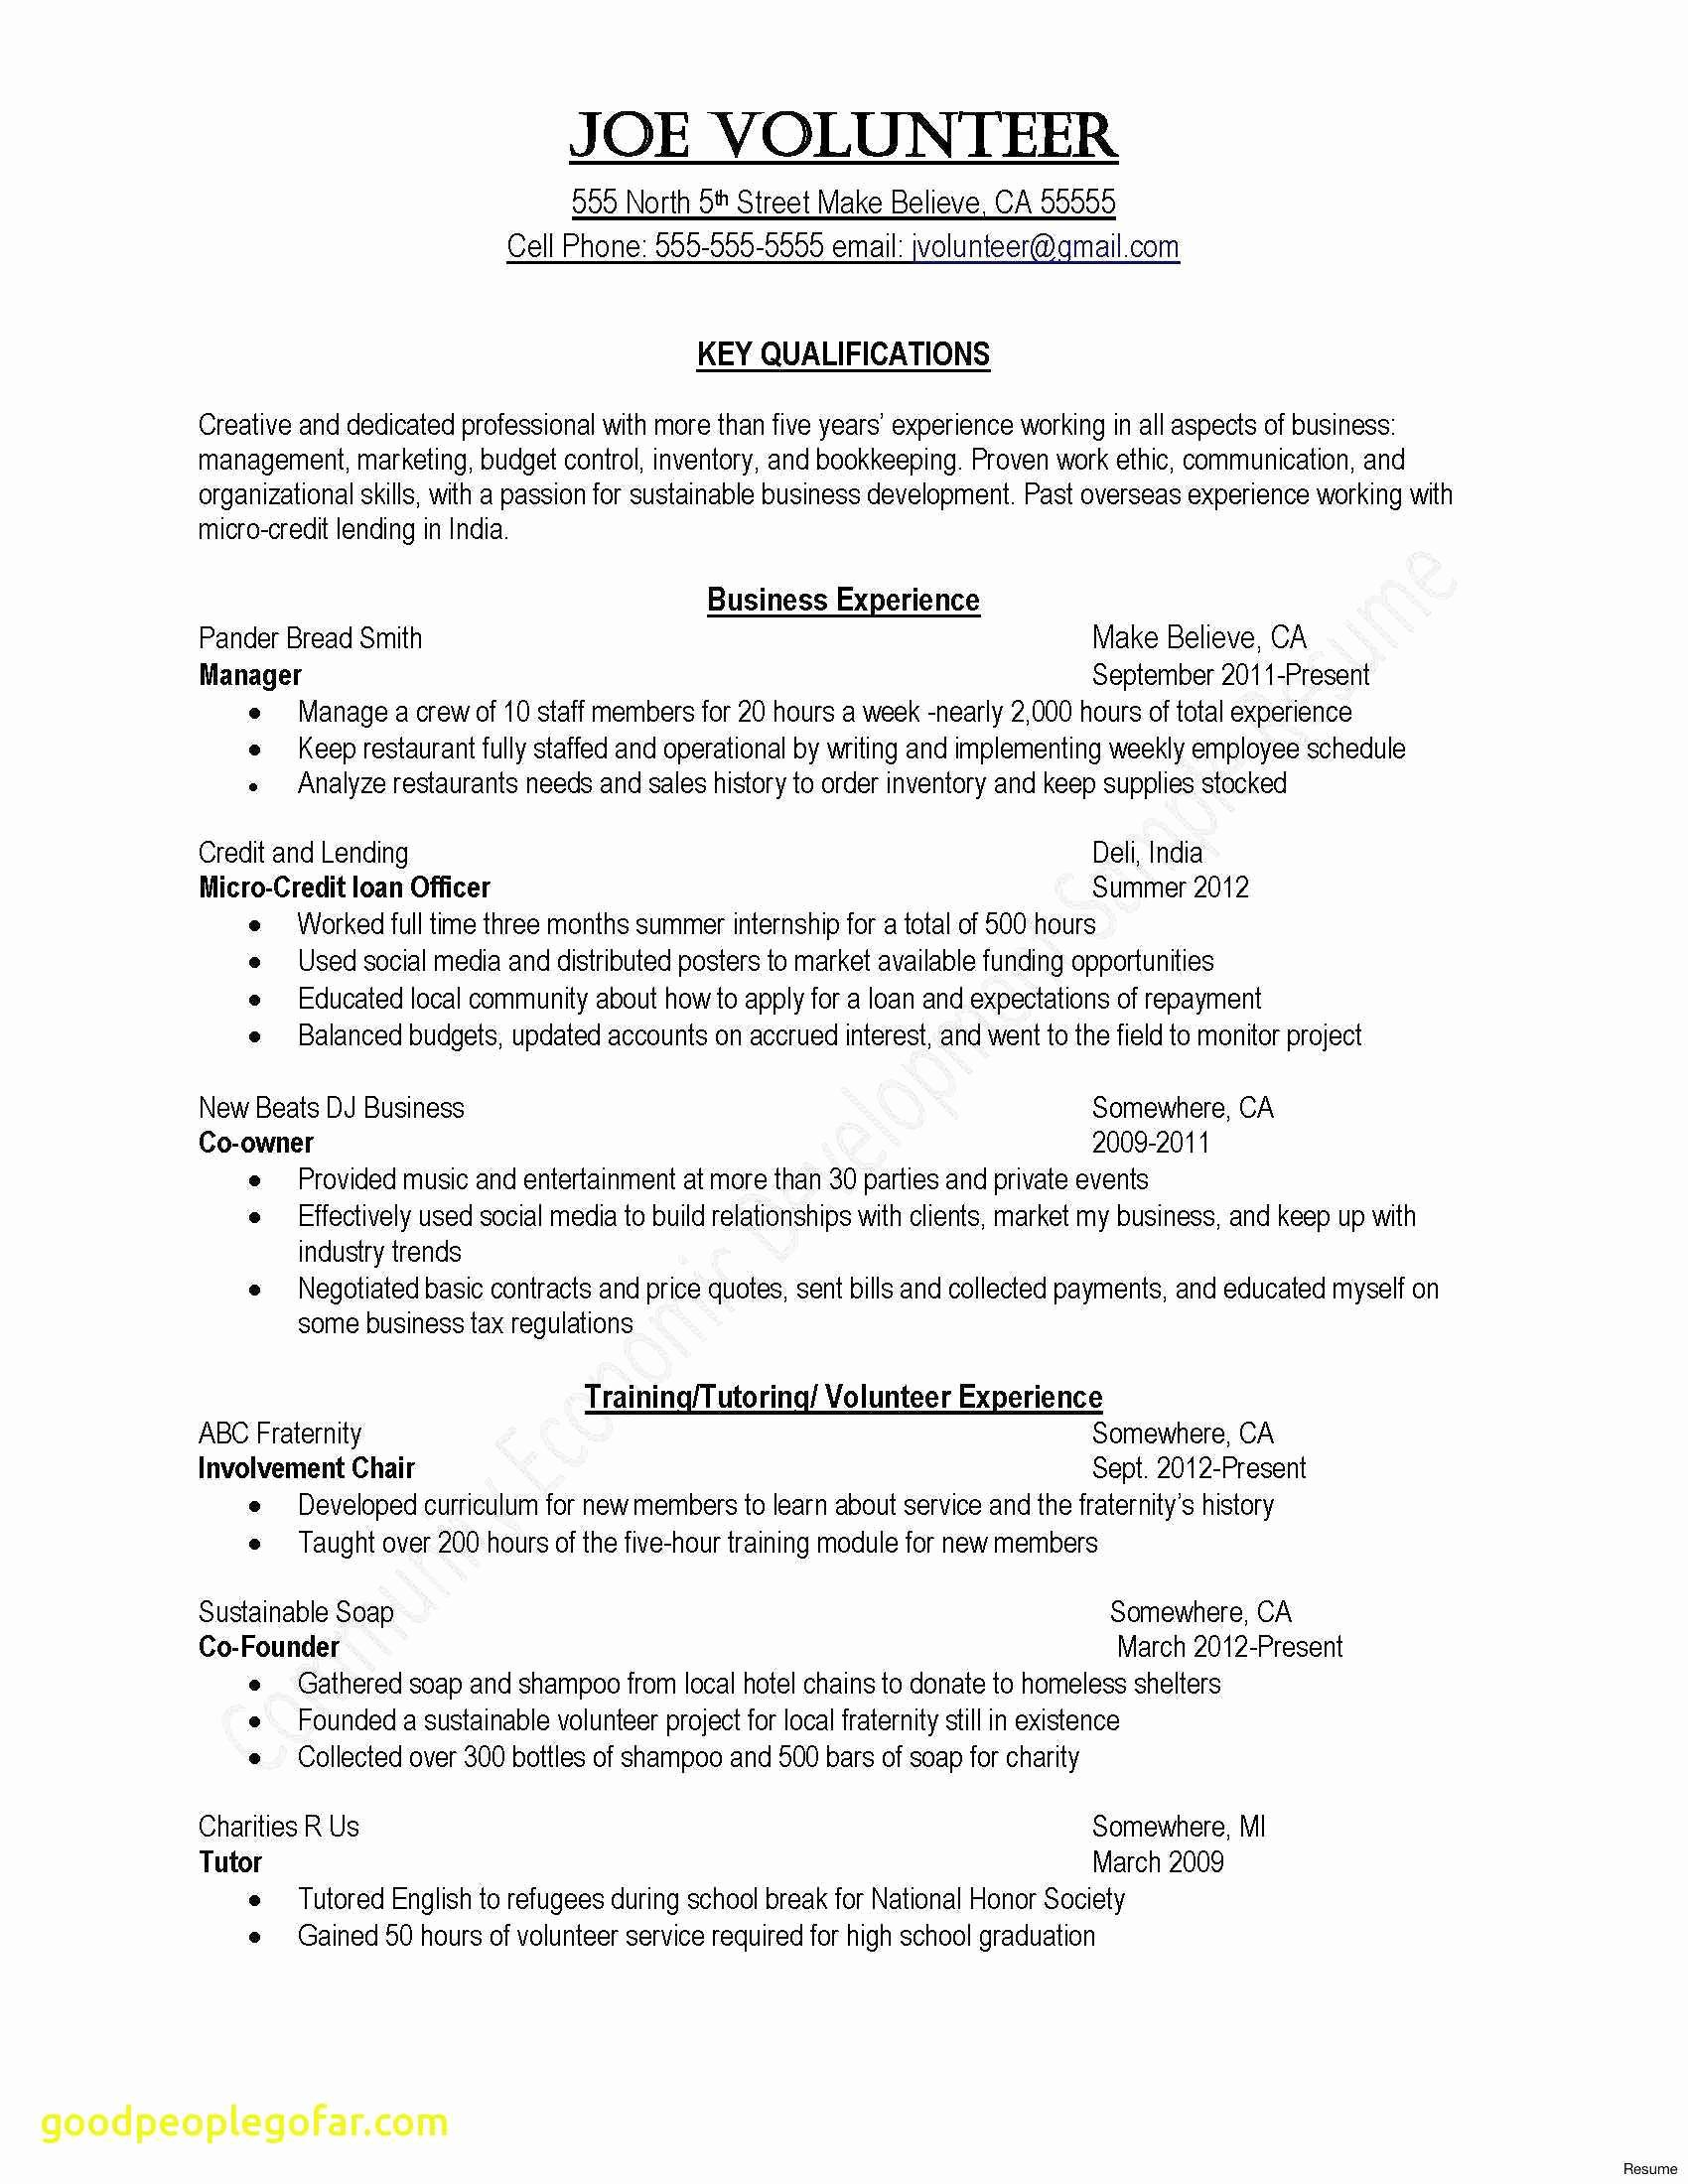 letter asking for donations template example-Letter asking for Donations Template Awesome Grapher Resume Sample Beautiful Resume Quotes 0d 4-d